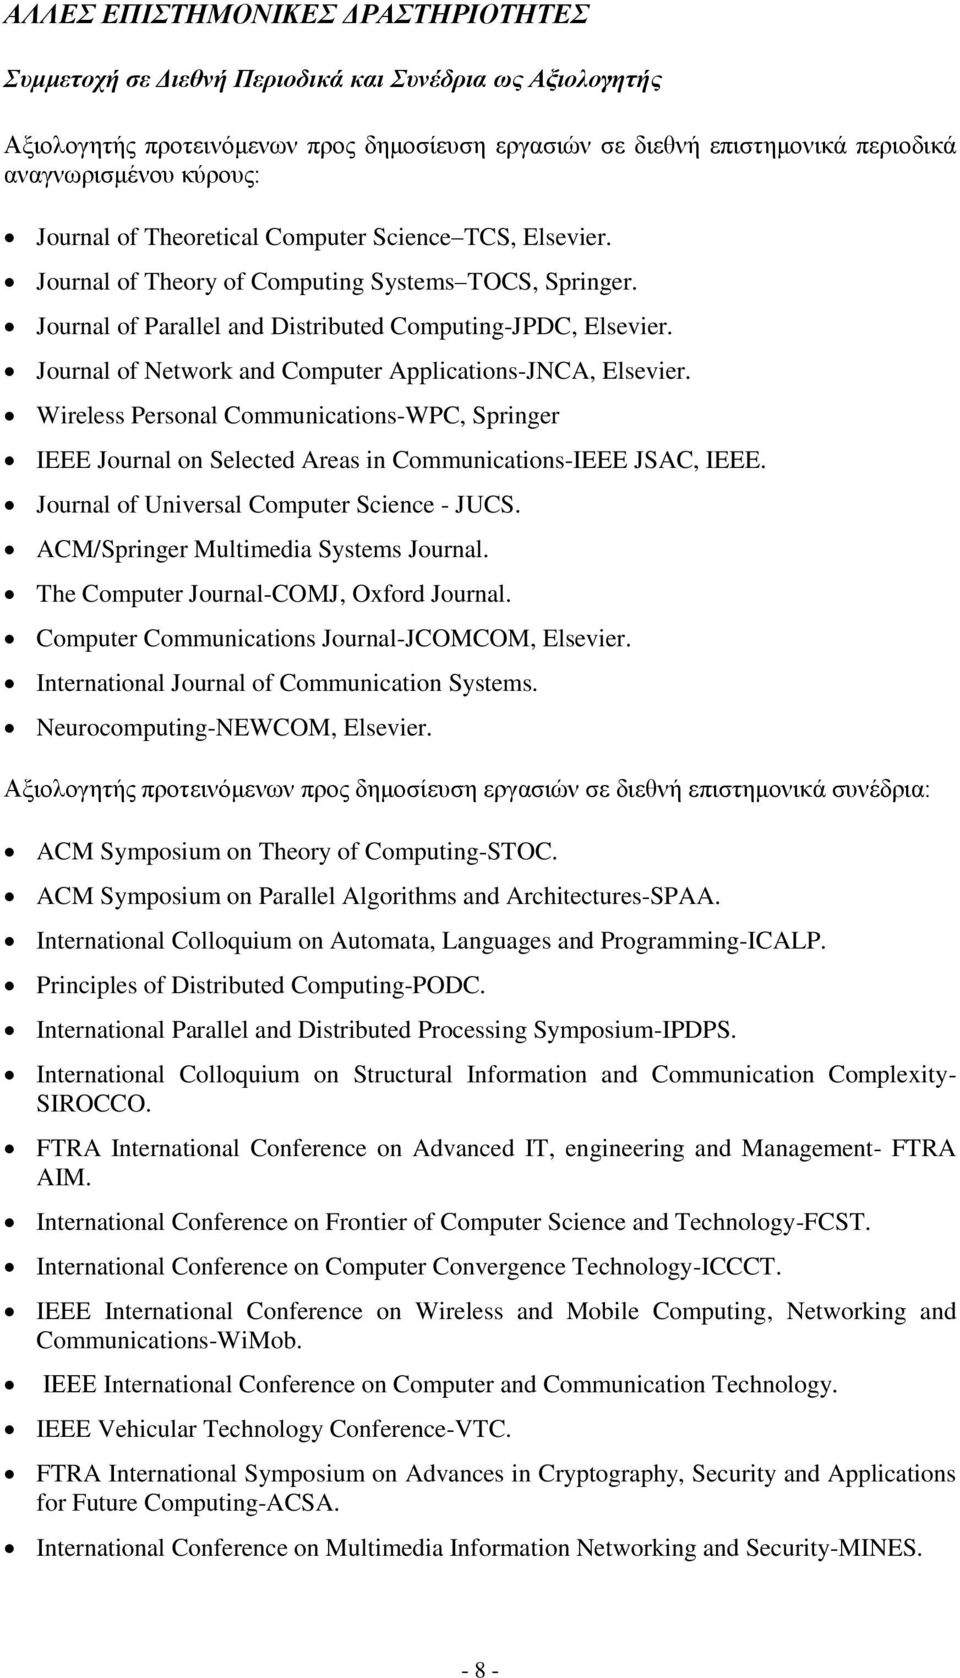 Journal of Network and Computer Applications-JNCA, Elsevier. Wireless Personal Communications-WPC, Springer IEEE Journal on Selected Areas in Communications-IEEE JSAC, IEEE.